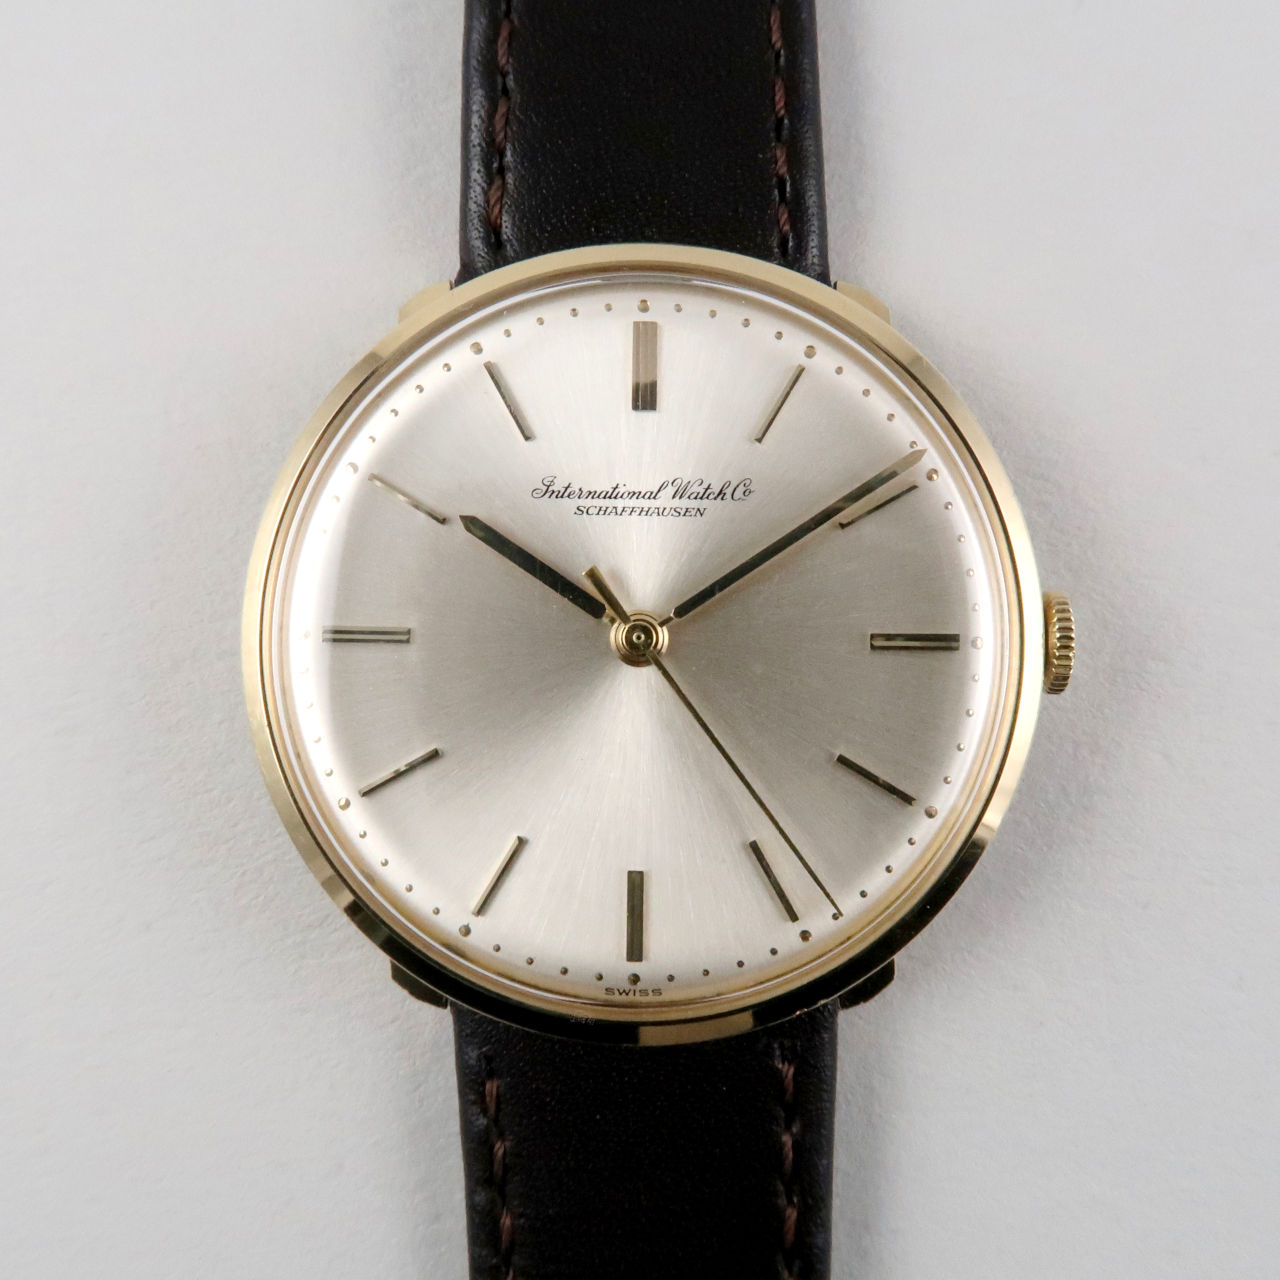 International Watch Co. Ref. 1410 gold vintage wristwatch, hallmarked 1968